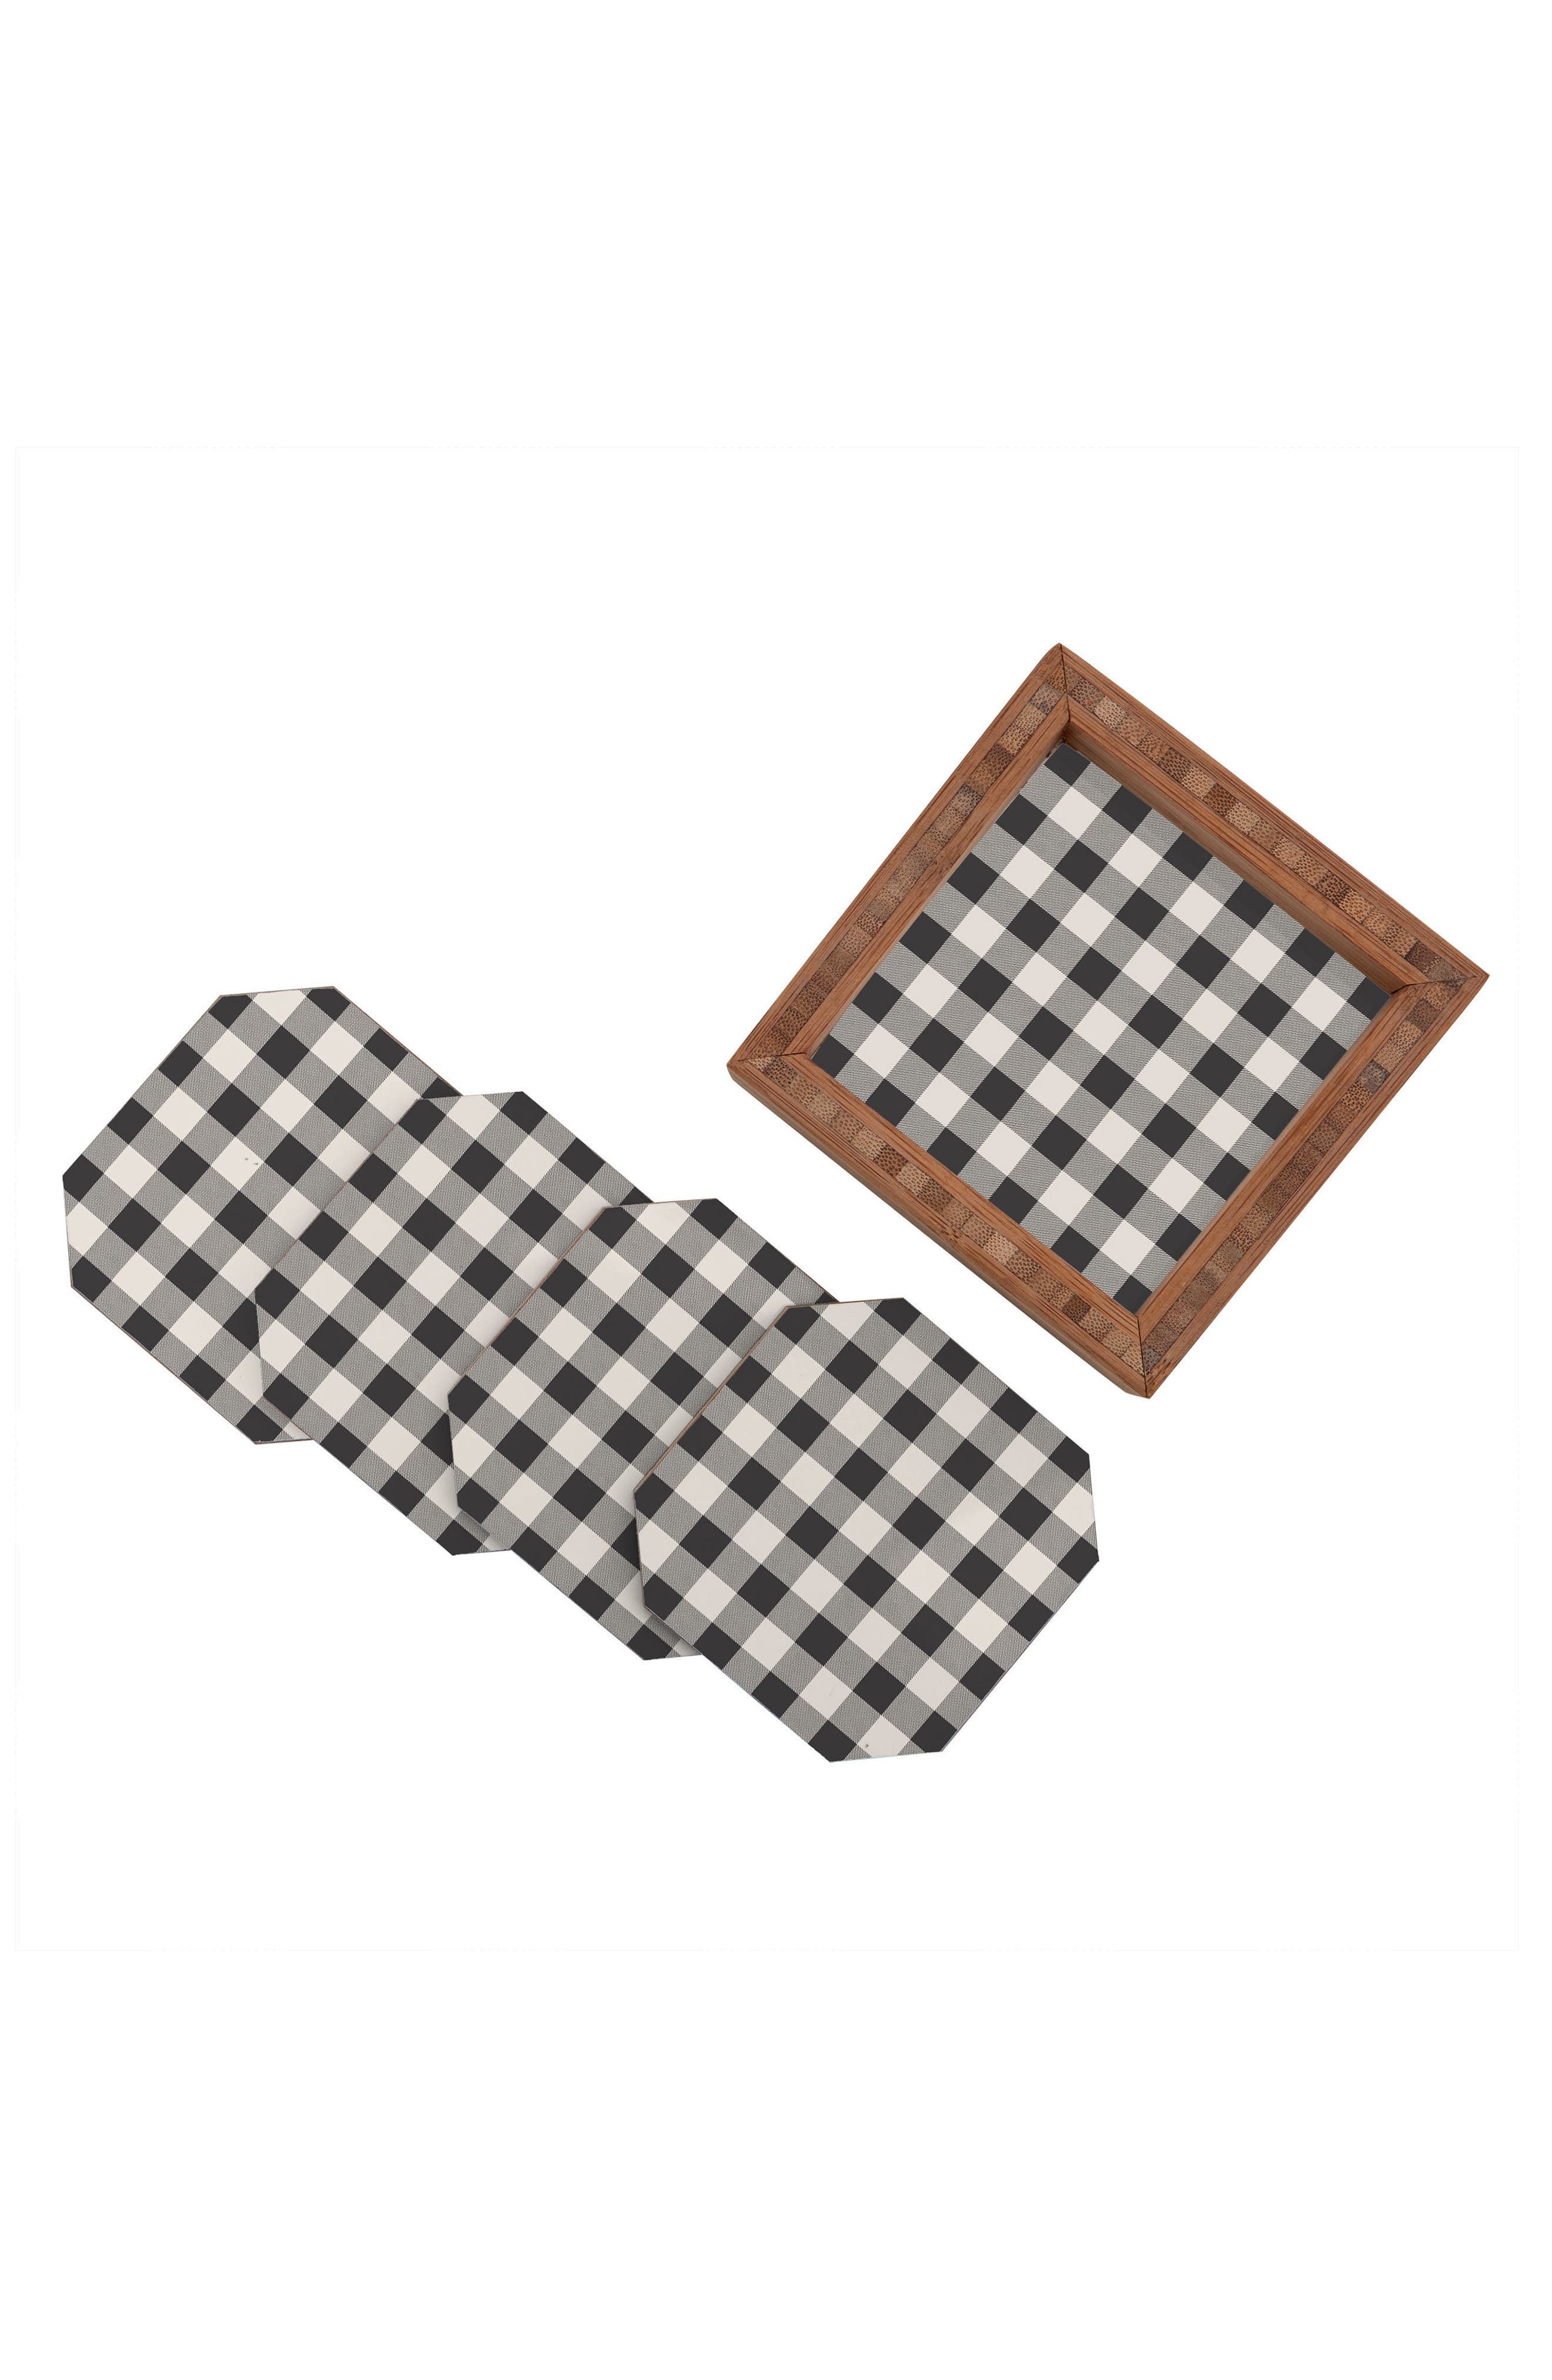 Gingham Set of 4 Coasters,                             Alternate thumbnail 3, color,                             400